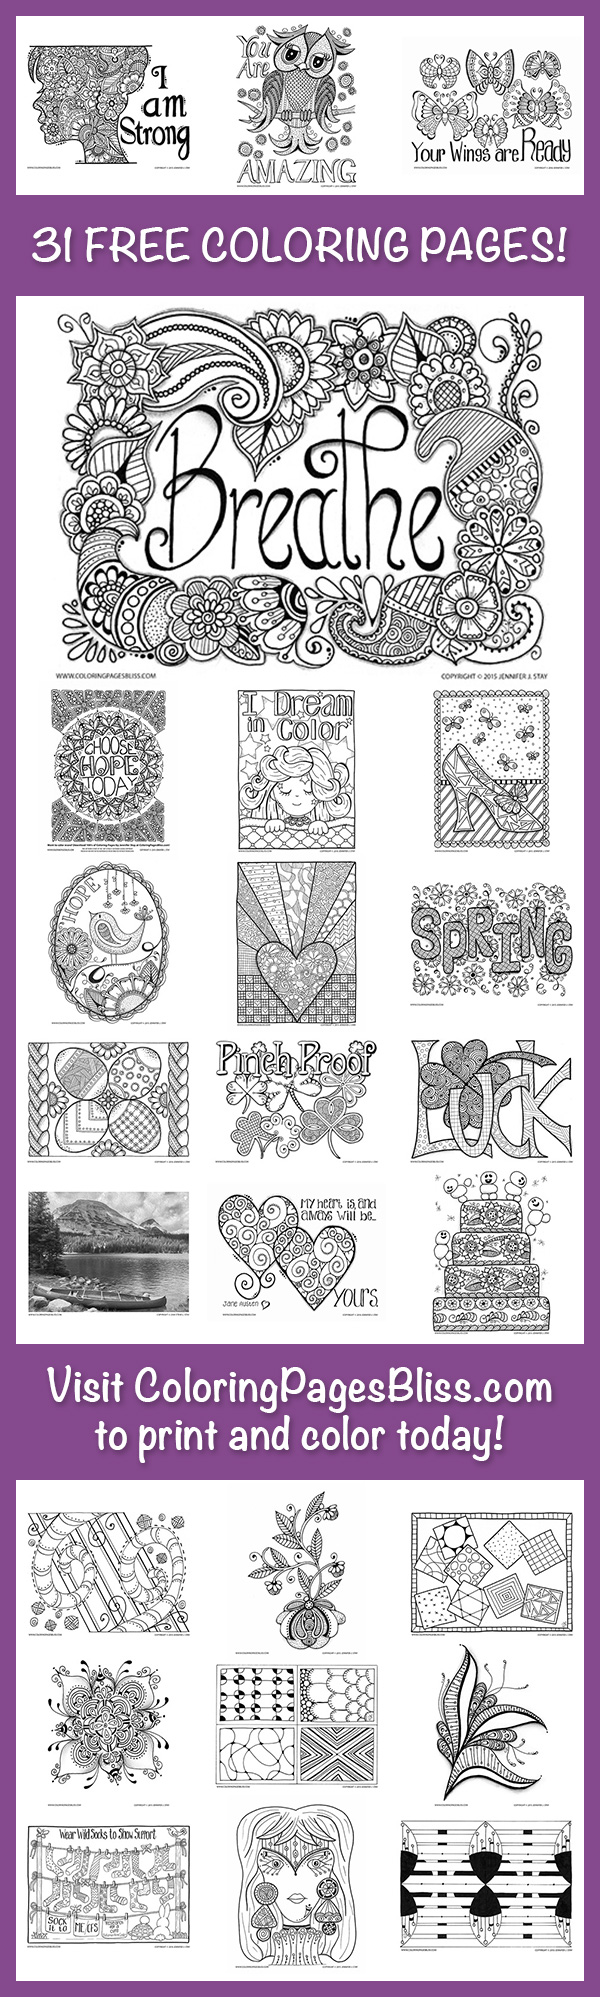 Download 31 Free Coloring Pages!   Colorear